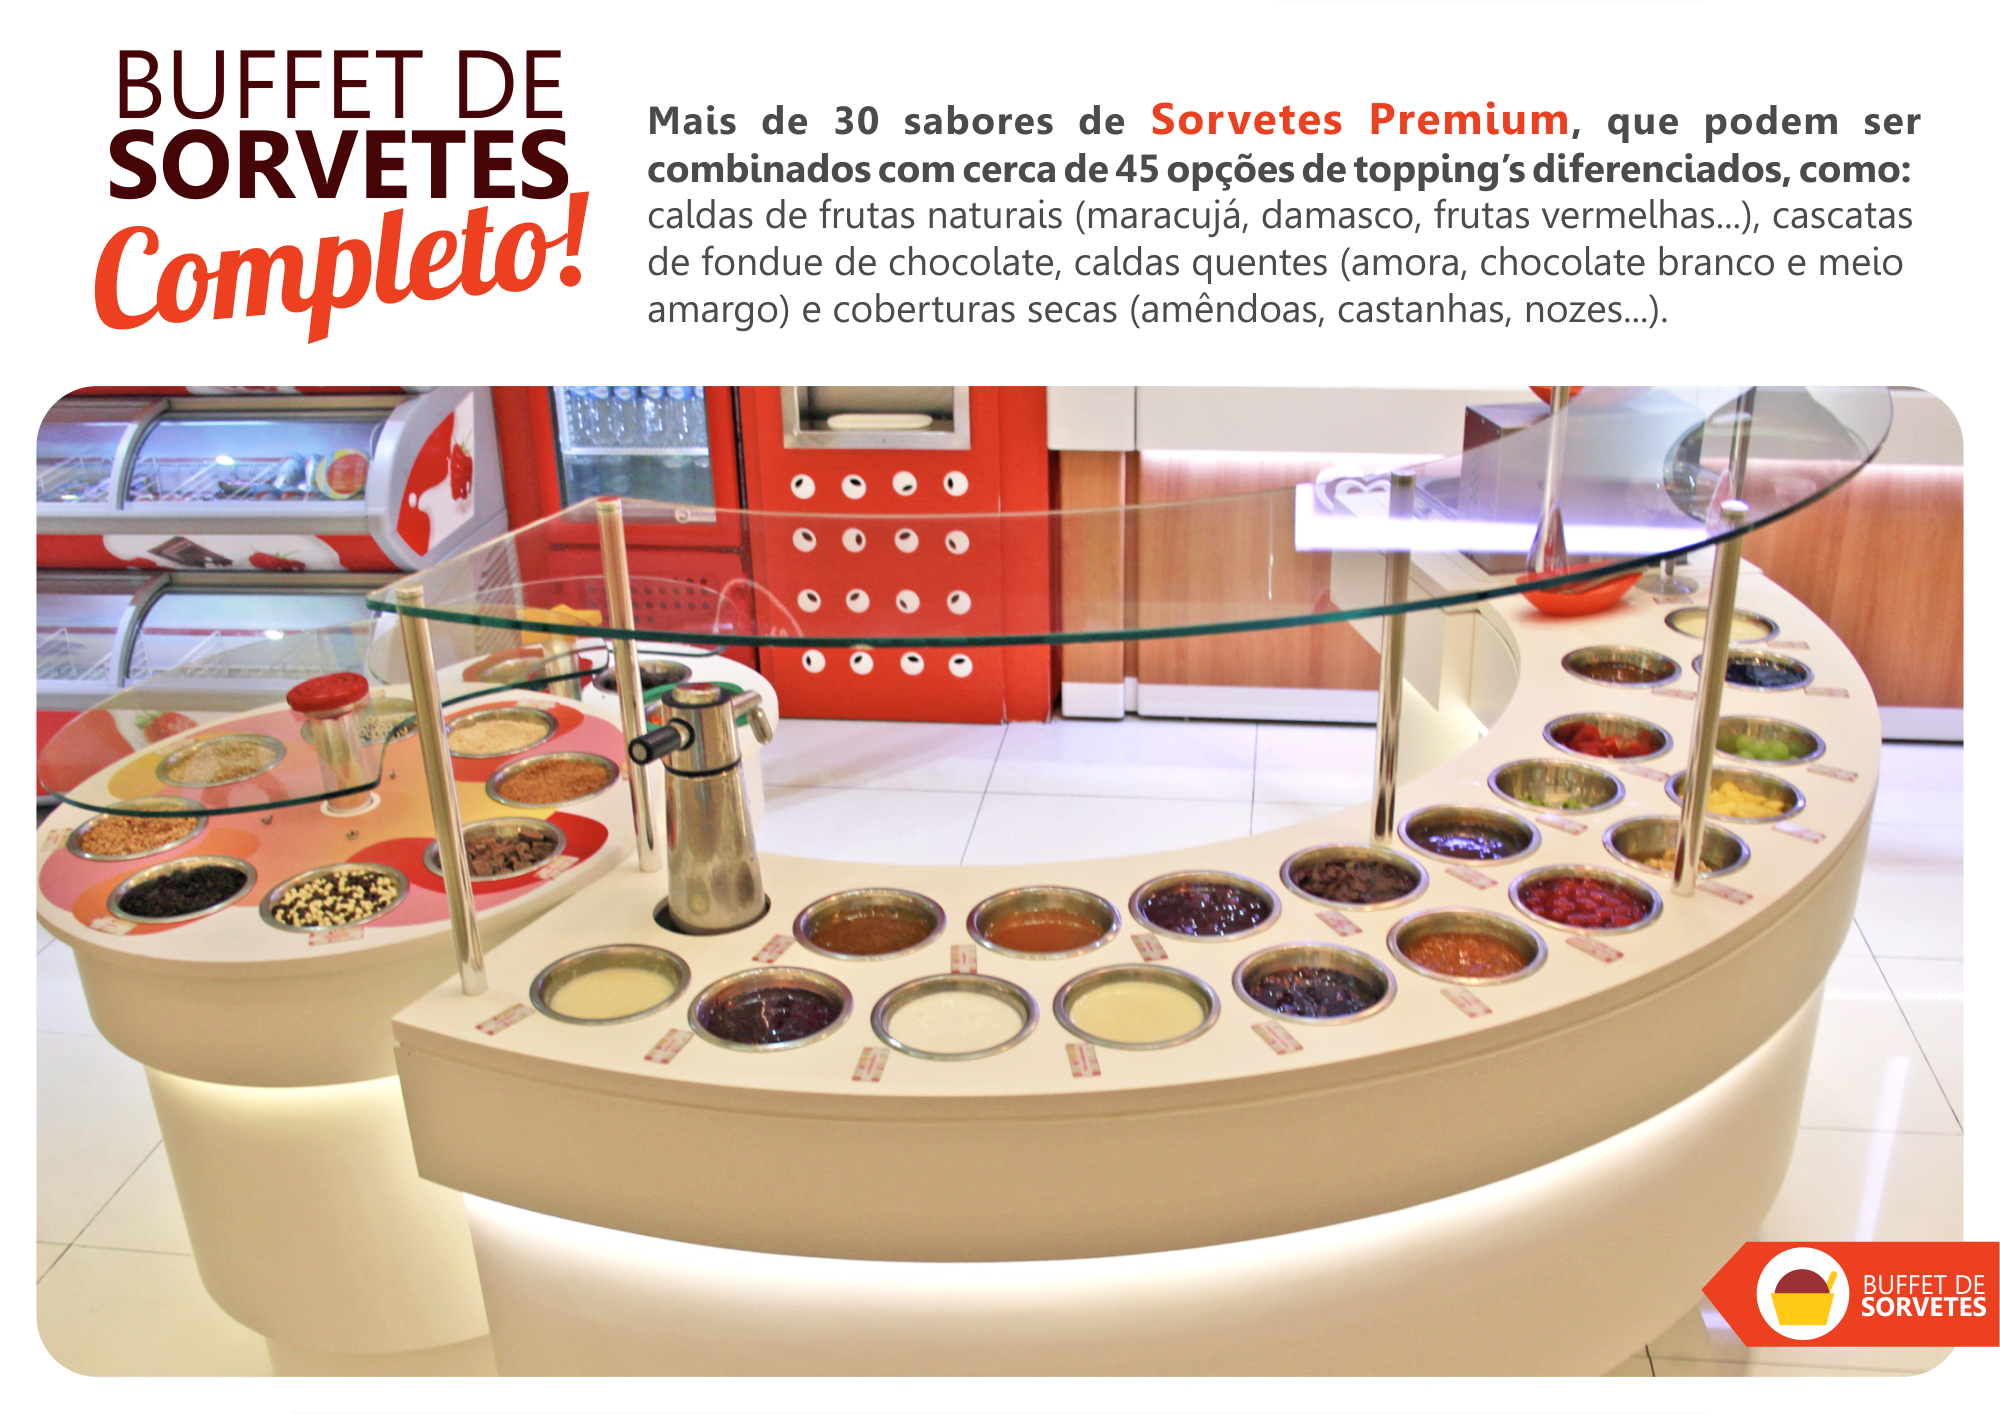 BUFFET DE SORVETES - ICEMELLOW